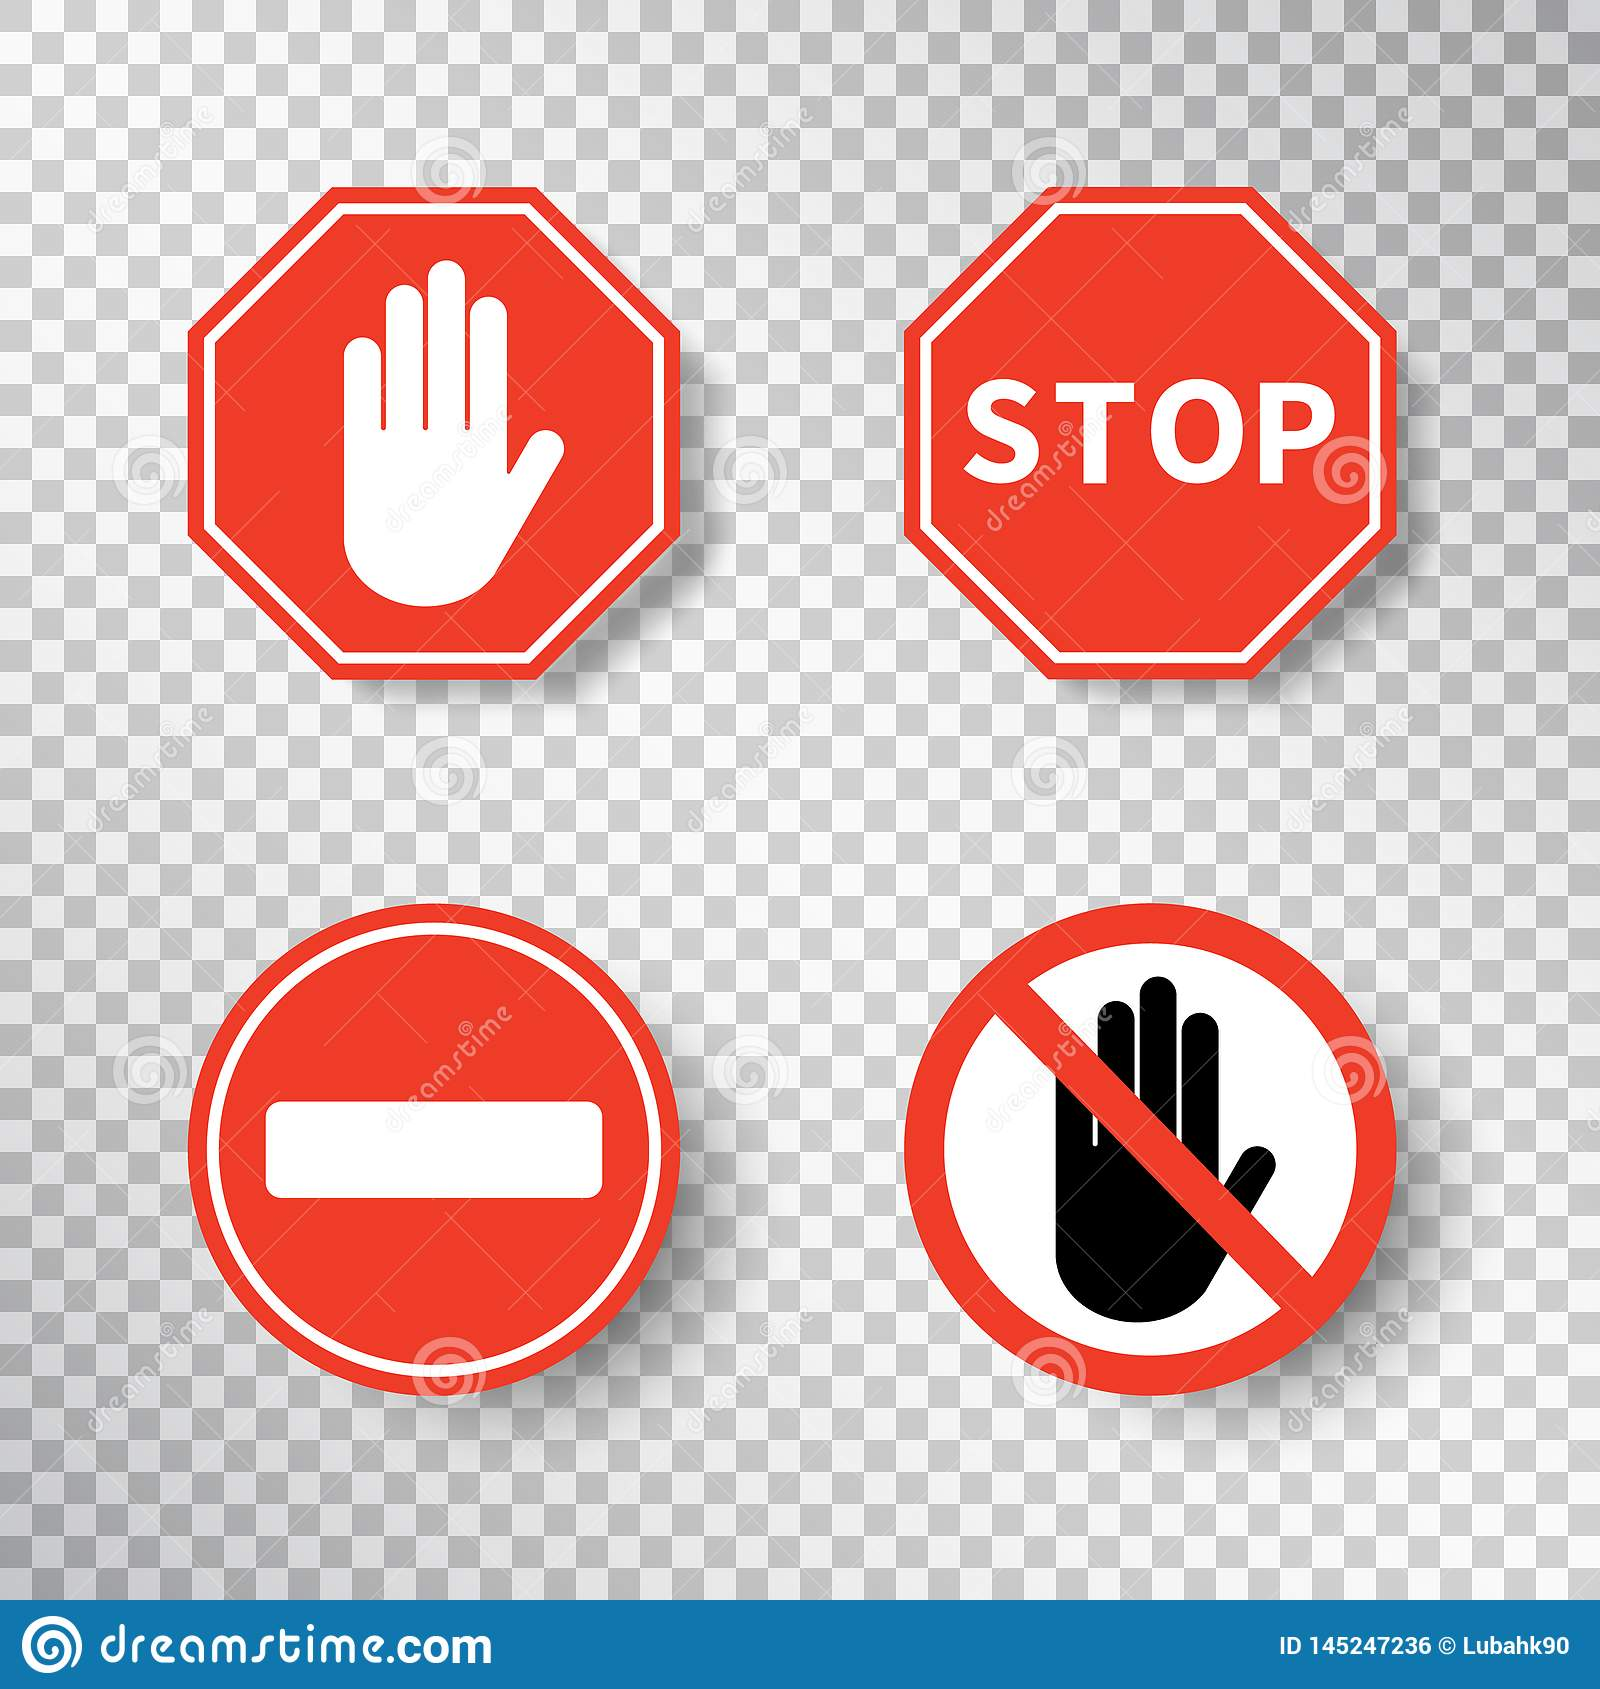 Stop Sign And No Entry Hand Symbol Set Isolated On Transparent